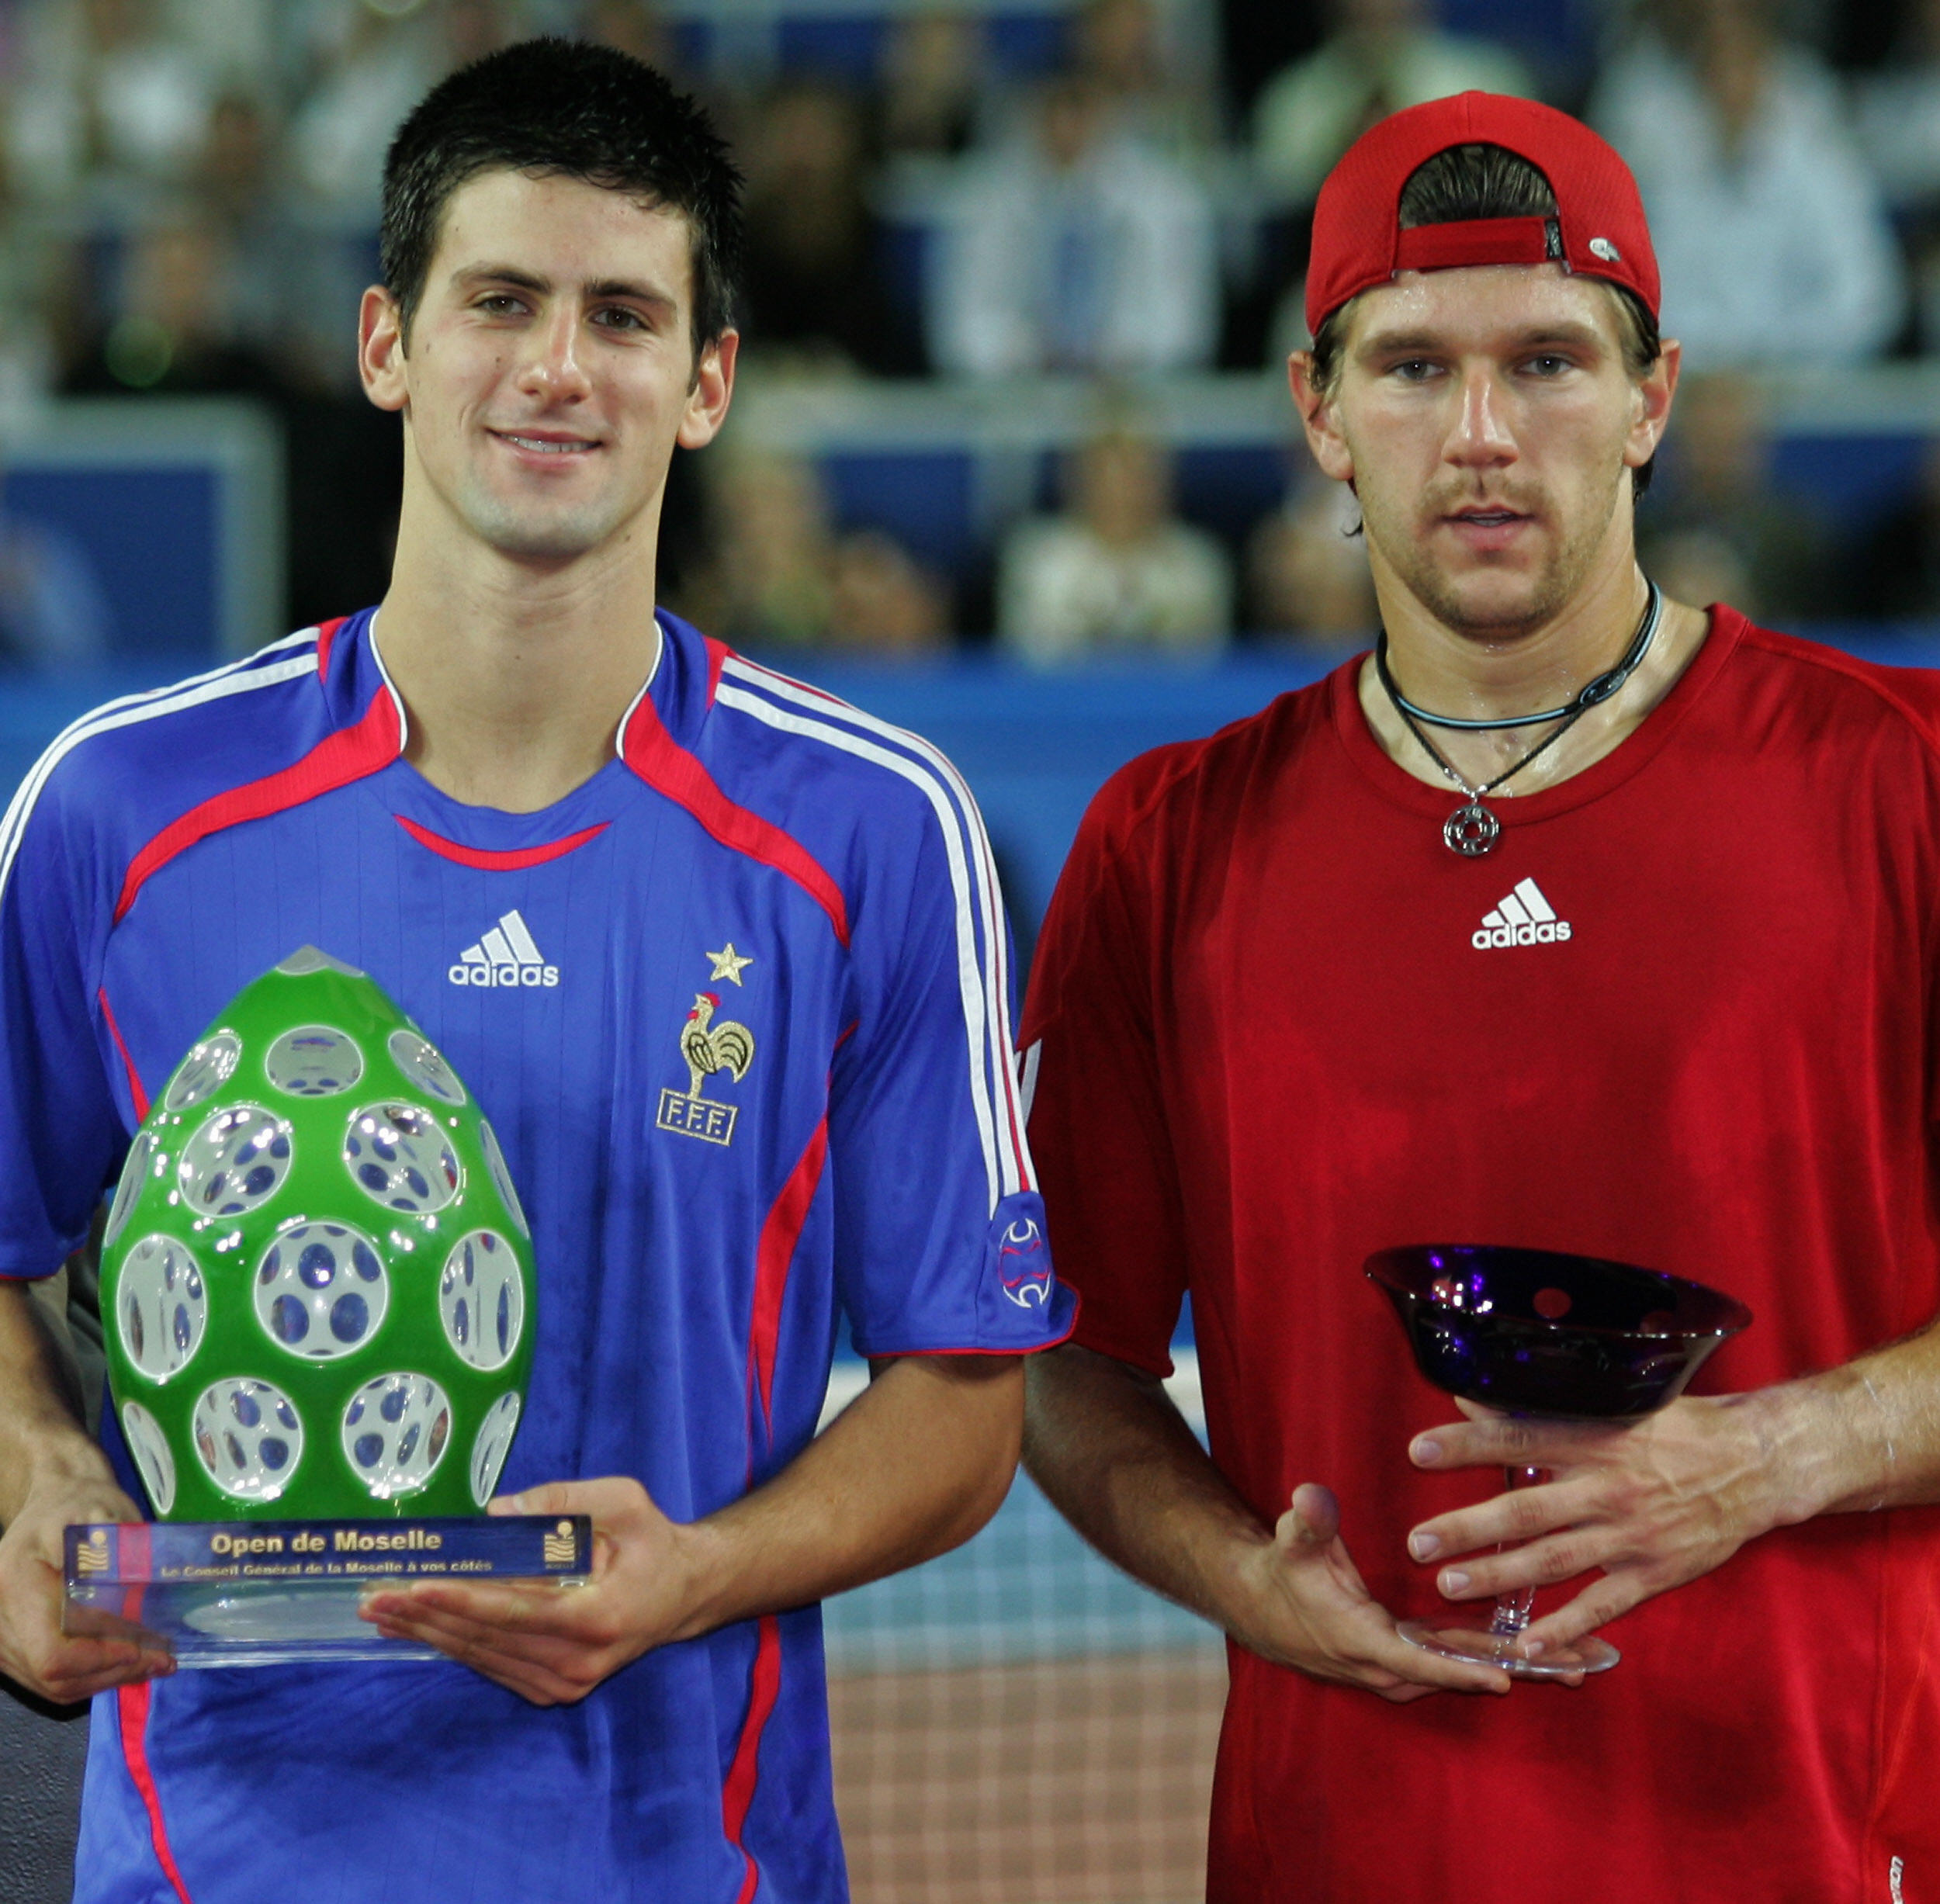 Always the crowd-pleaser, Djokovic threw on a French soccer jersey after winning the title in Metz.